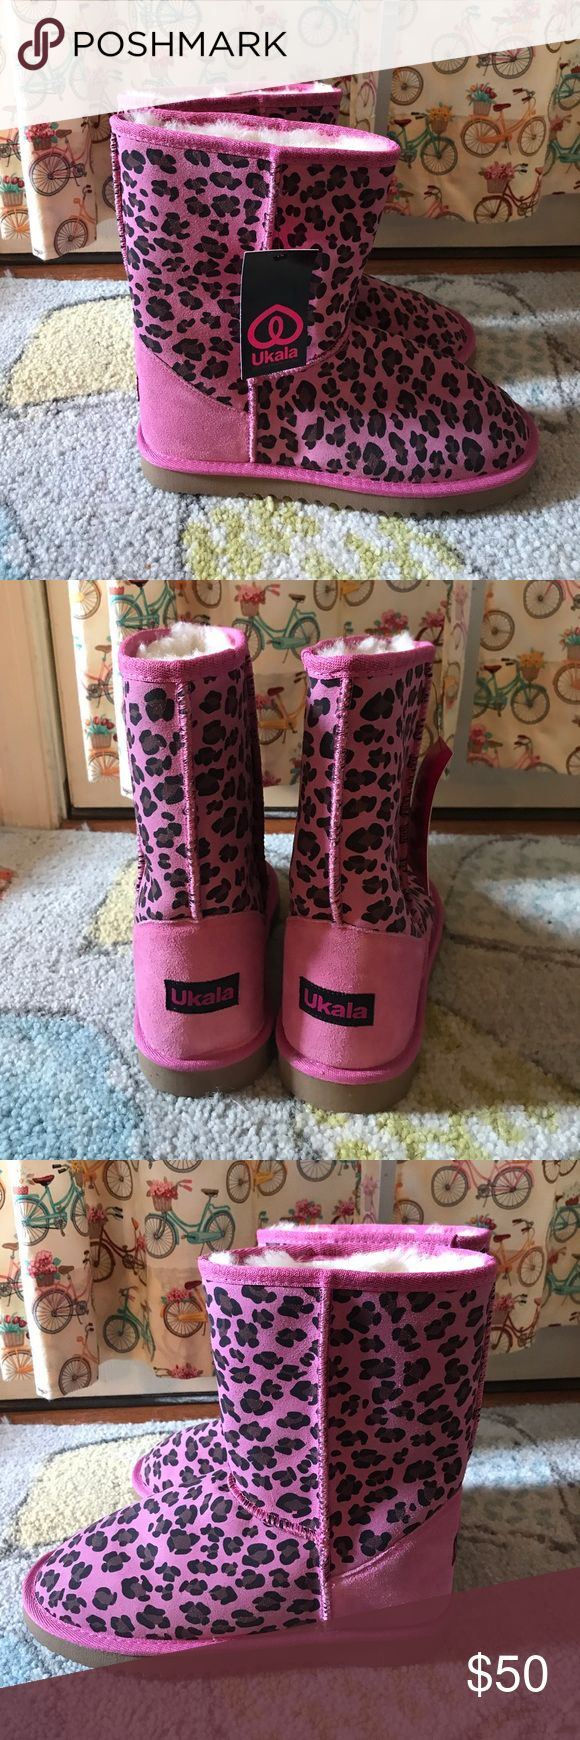 Ukala Australian Leopard Cheetah Boots 39 NWT Beautiful pink cheetah leopard design new boots in size 39 with tag attached. Never worn. Smoke free home. Soft and cozy like UGG boots. Perfect condition Ukala Shoes Winter & Rain Boots